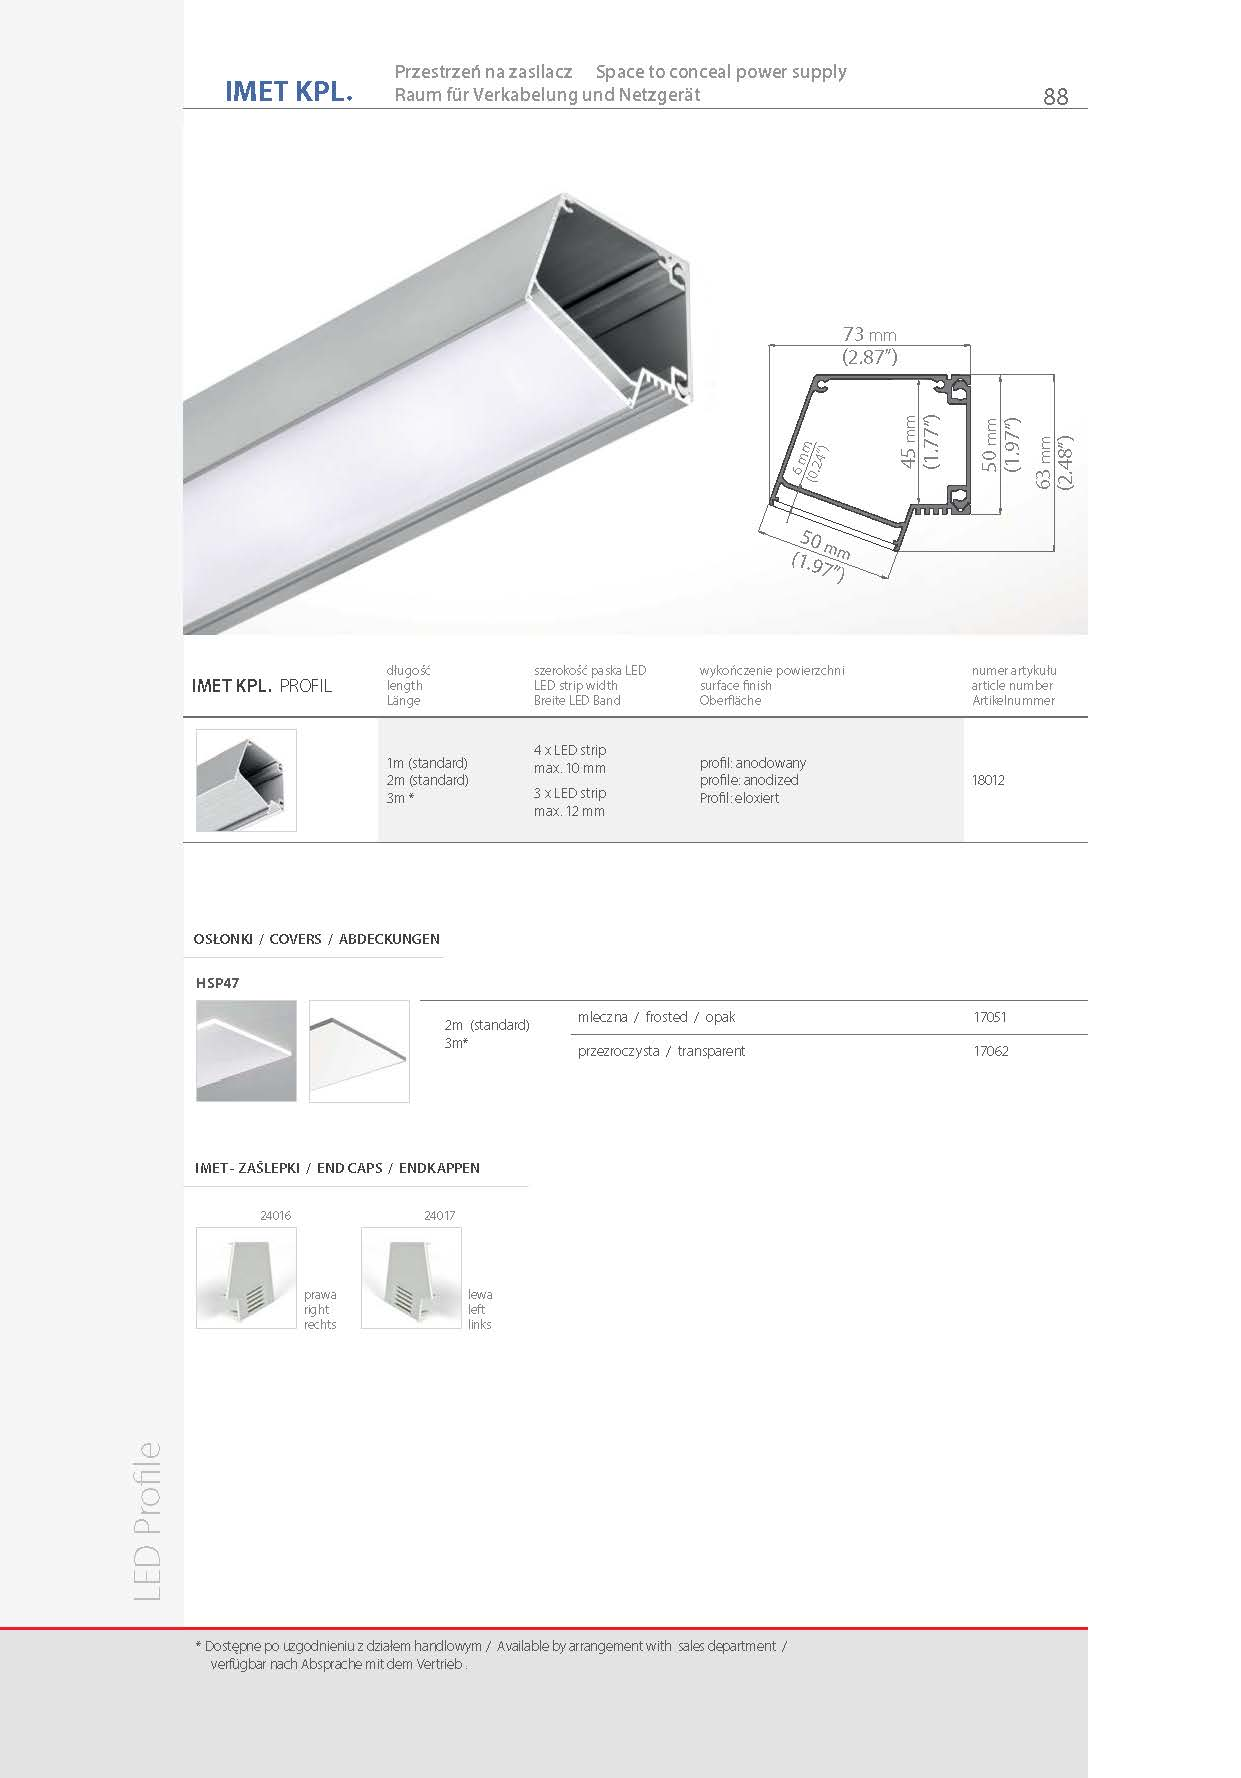 IMET, profile | stair-lighting.com, 18012 profile, IMET klus profile, IMET channel,